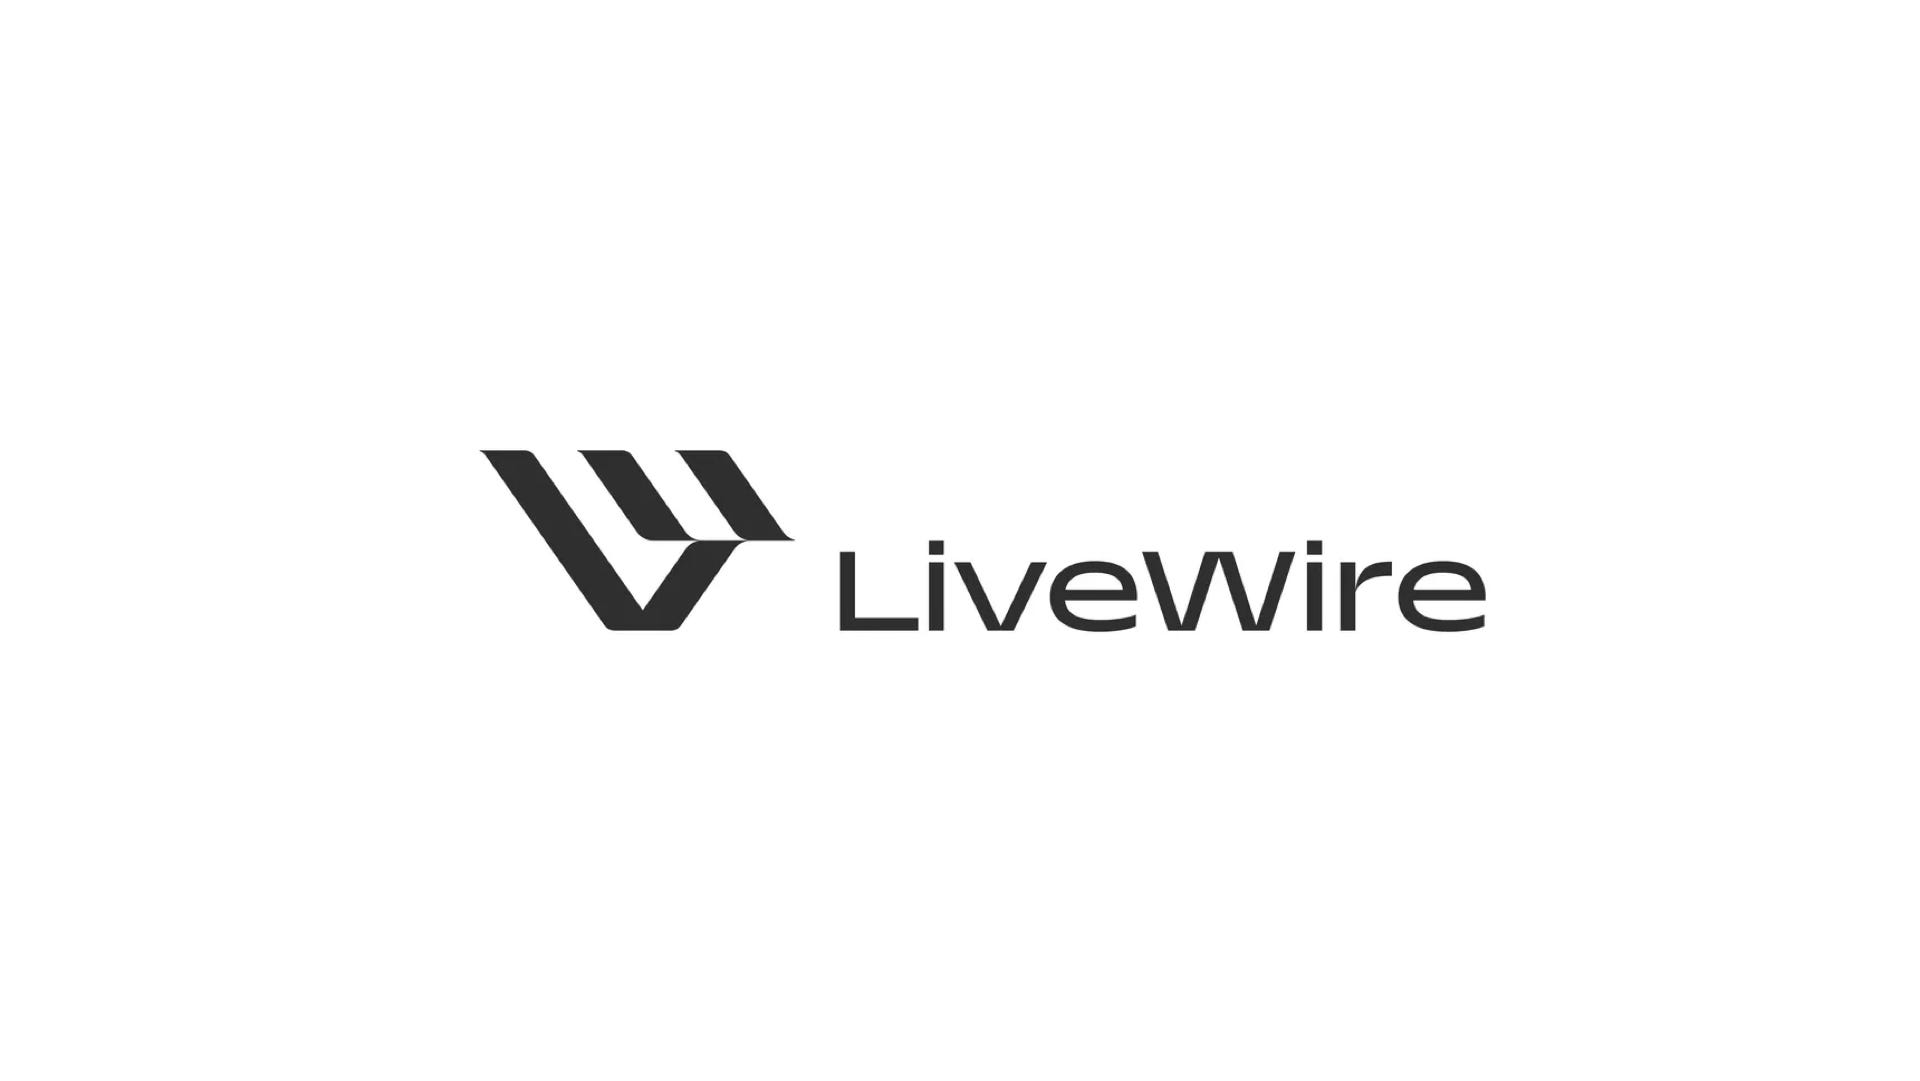 LiveWire Electric Motorcycle brand logo